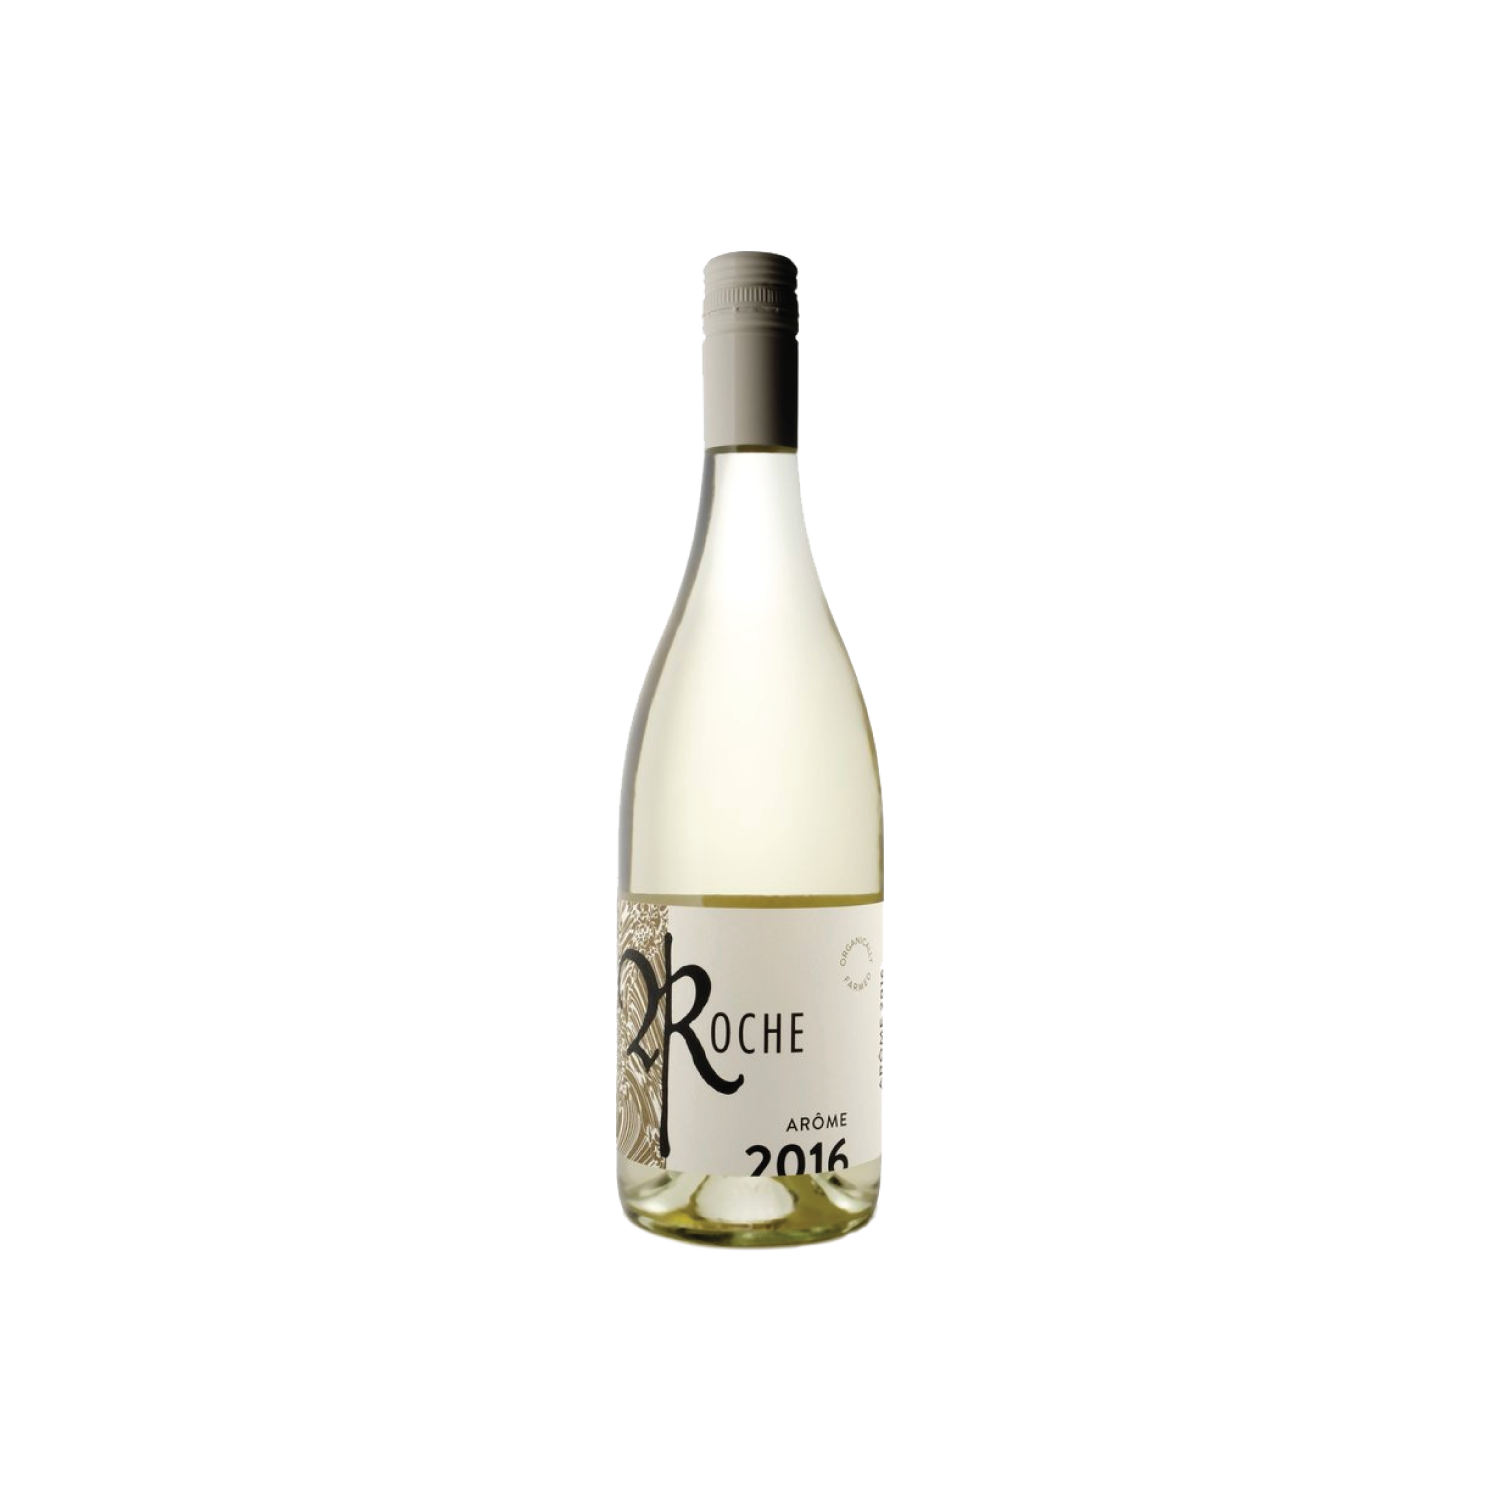 Roche Arôme - This wine is an aromatic explosion of honey suckle, tropical fruits and spring blossoms that finishes surprisingly dry. A perfect accompaniment to lounging on a sunny afternoon.$21.49 (750ml)Okanagan Valley, BC